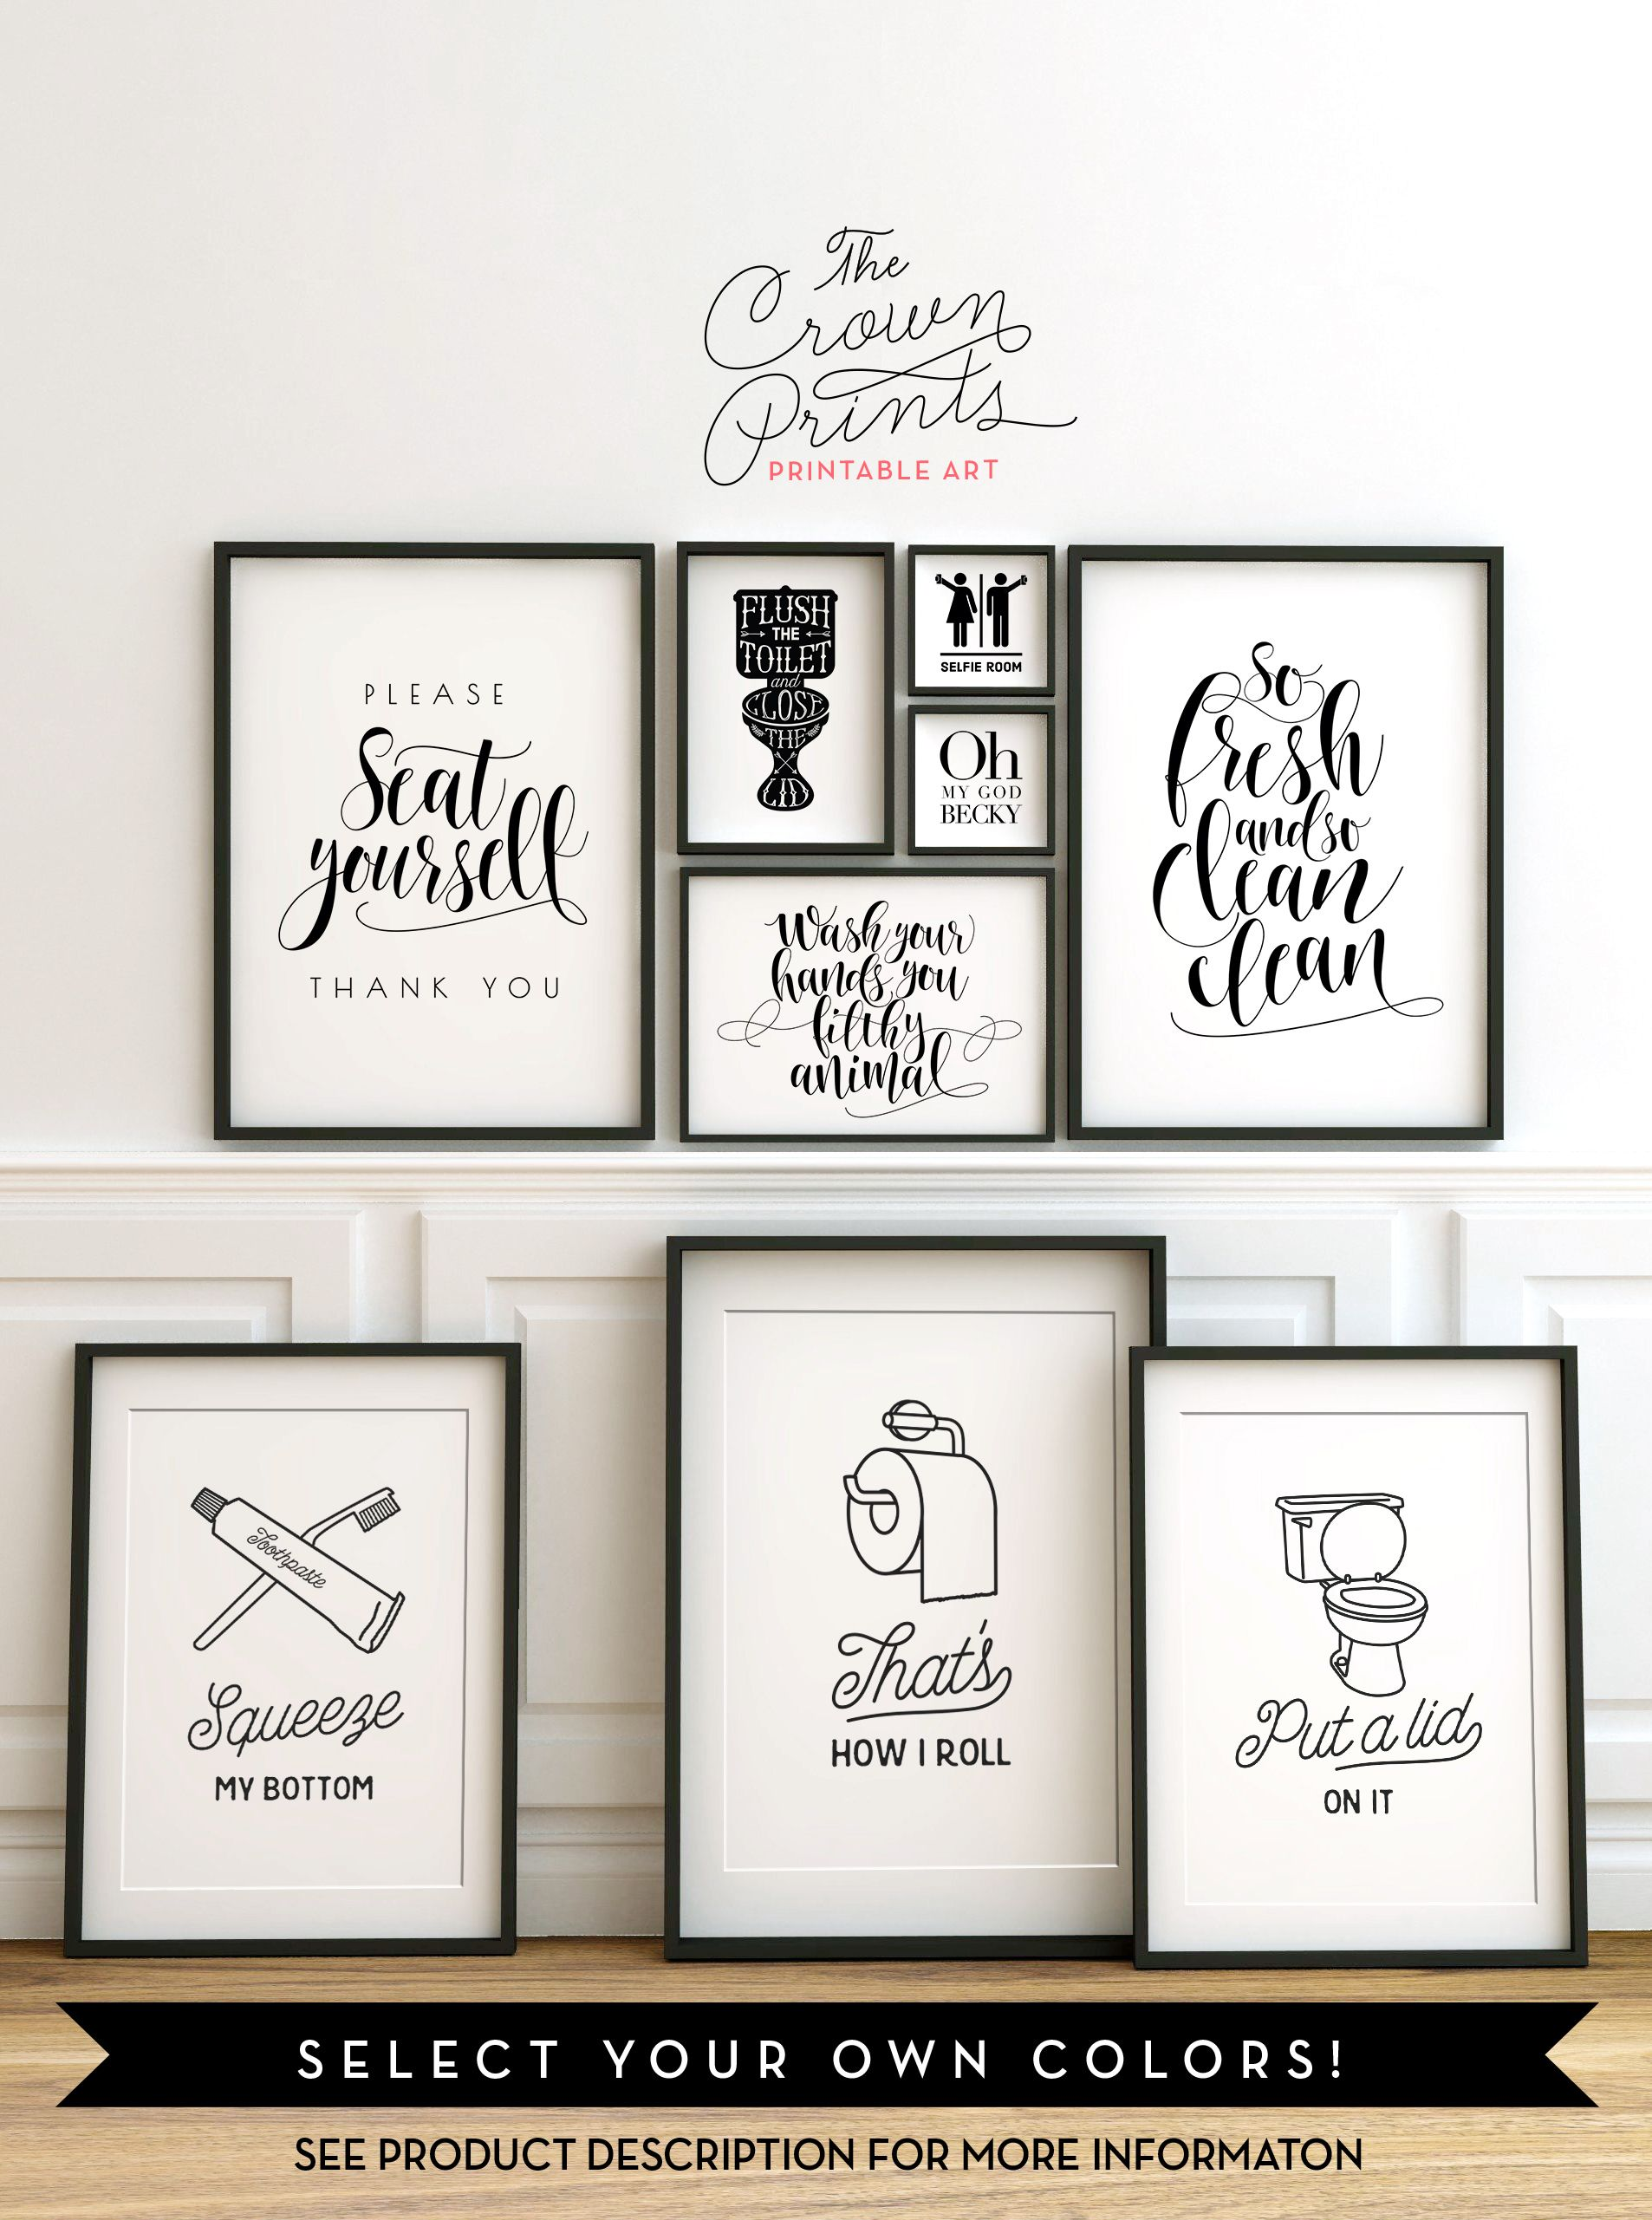 Printable bathroom wall art from the crown prints on etsy lots of funny quotes and designs instant bathroom decor http www etsy com shop